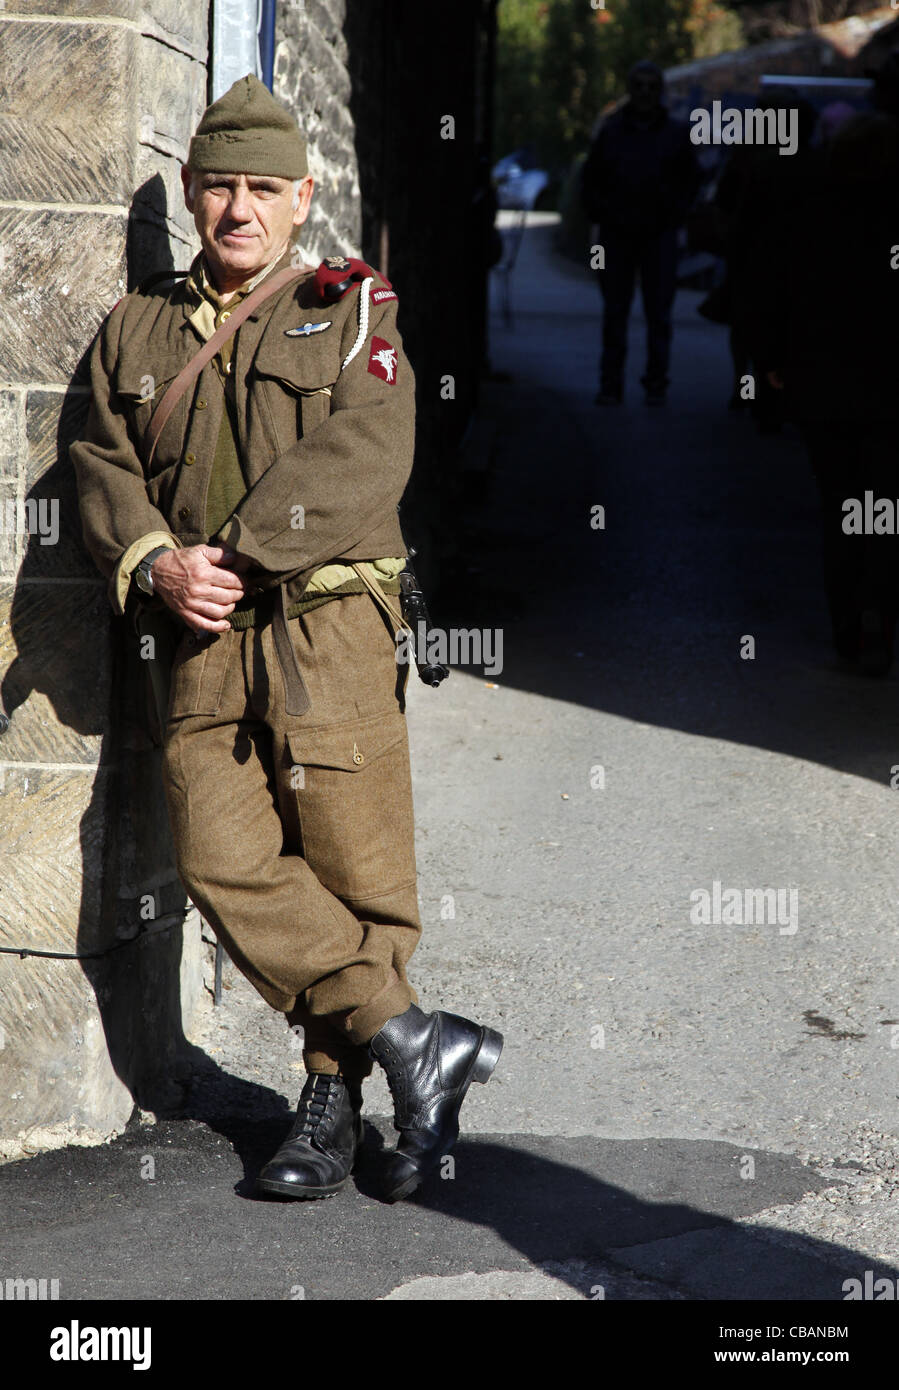 1940S BRITISH ARMY PARATROOPER PICKERING NORTH YORKSHIRE 15 October 2011 - Stock Image